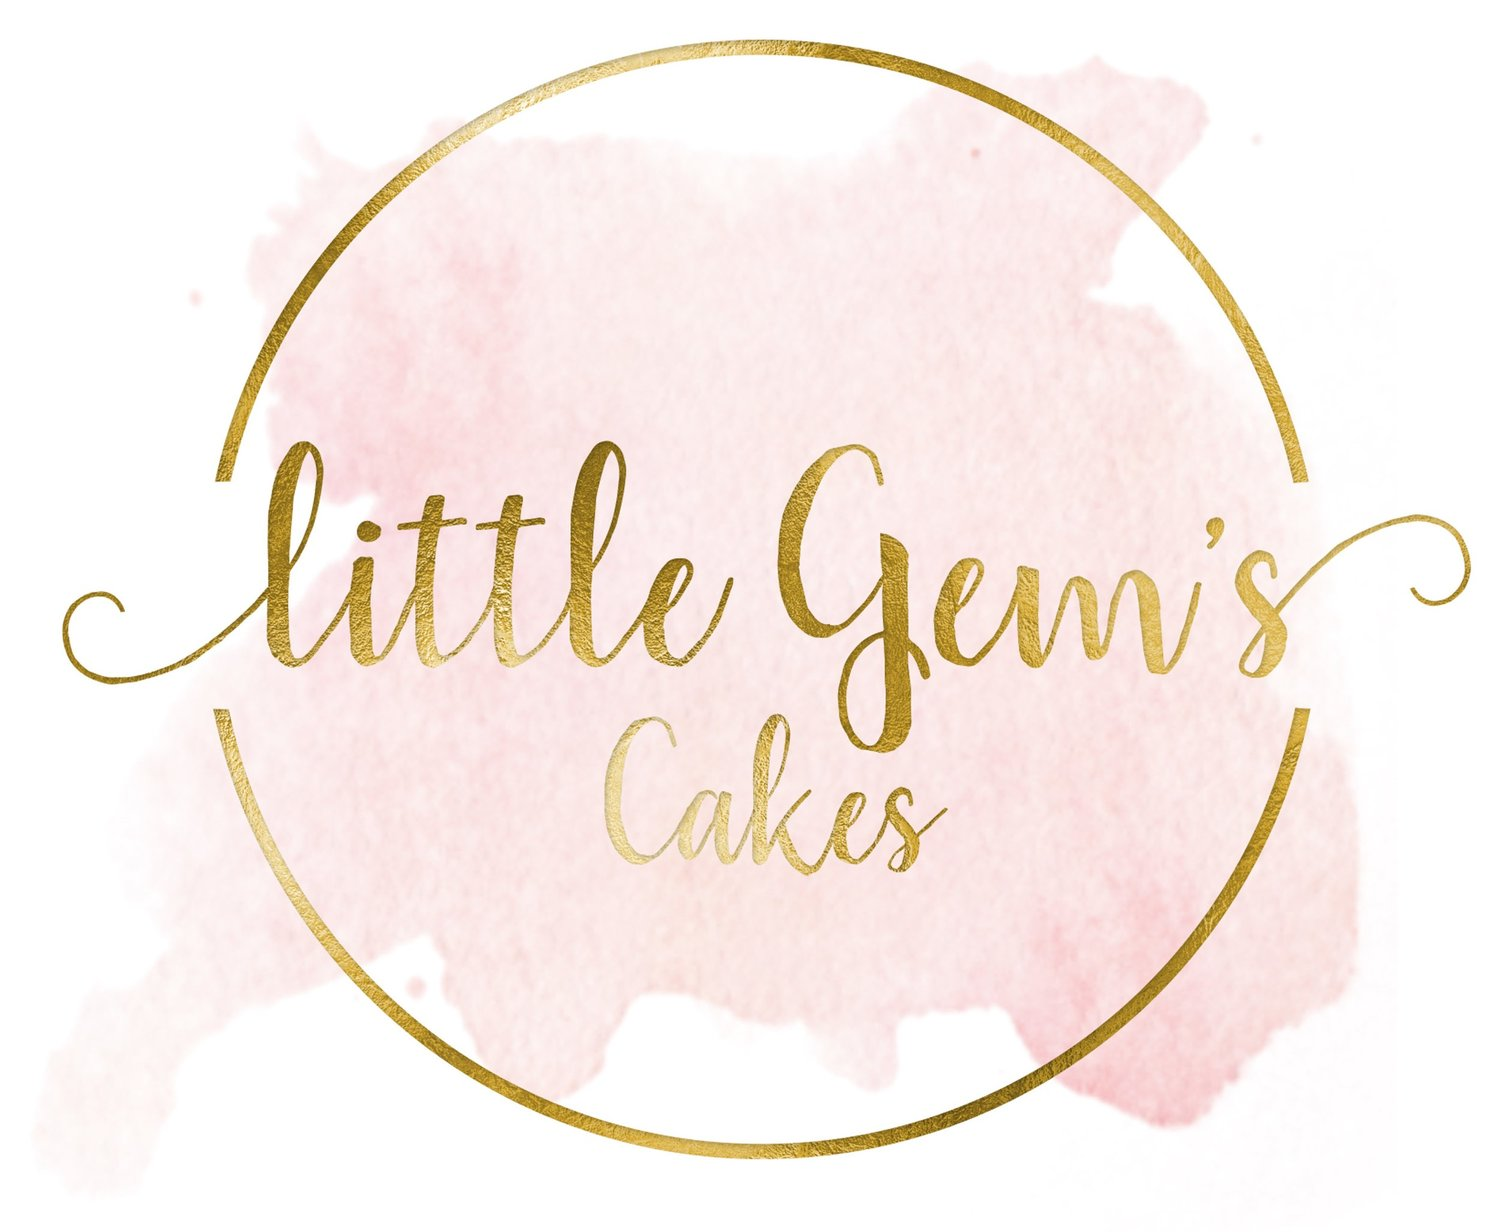 Little Gem's Cakes